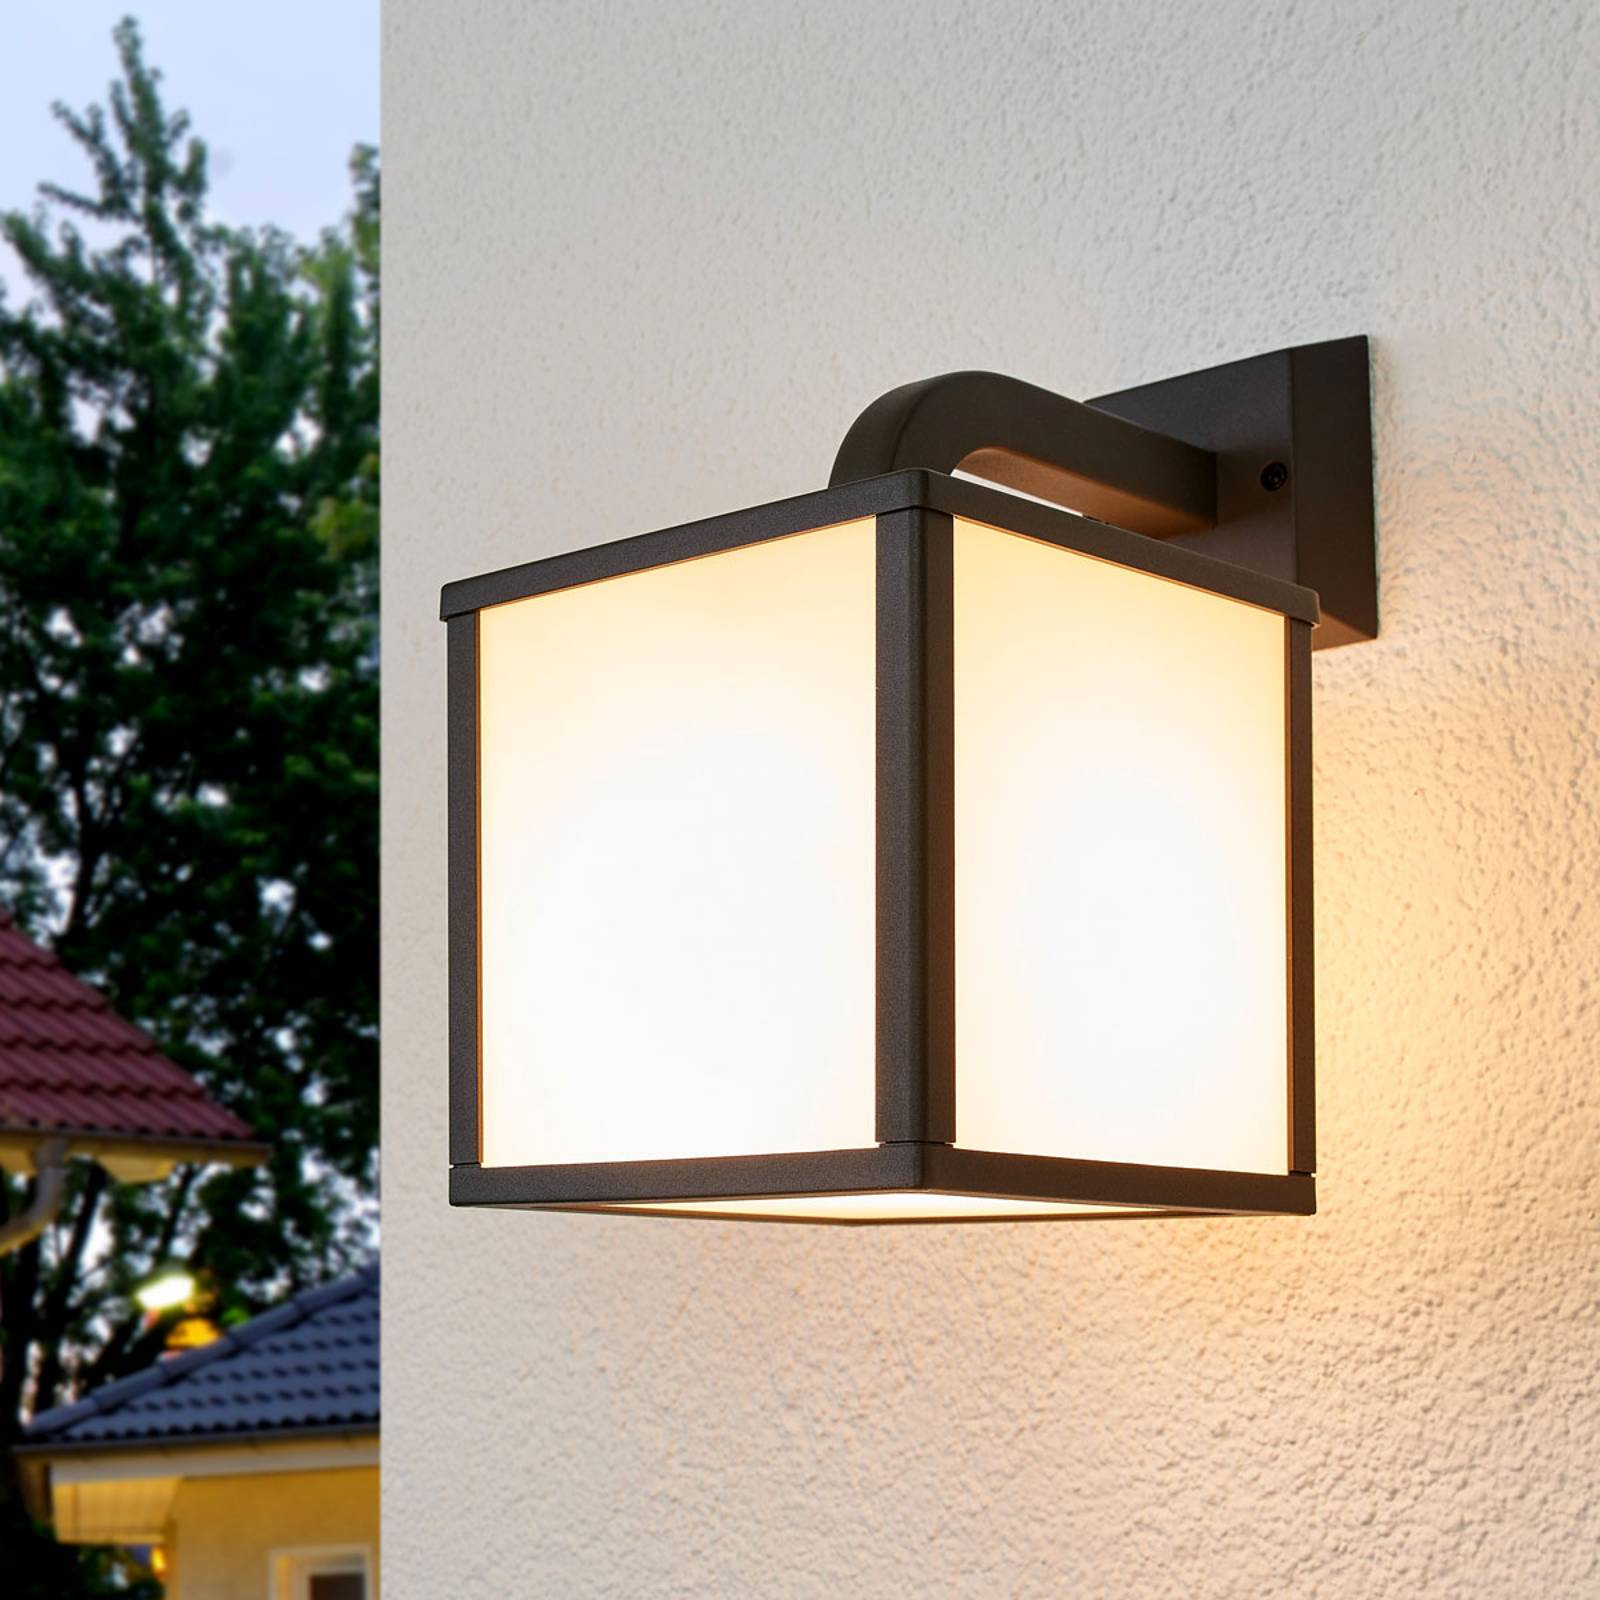 Cubango LED outdoor wall light, cubic lampshades from Trio Lighting